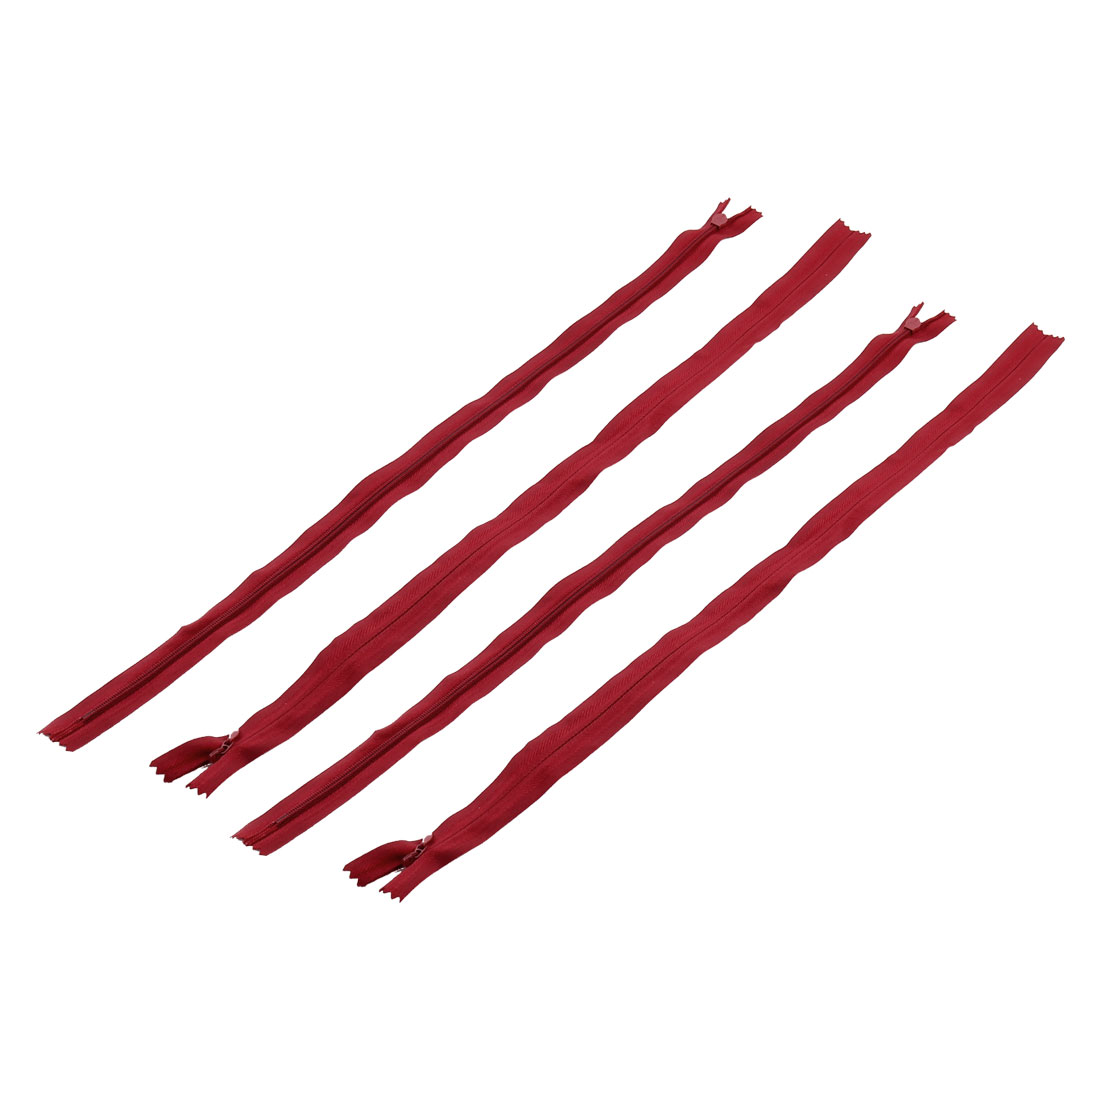 Tailor Sewer Nylon Smooth Invisible Zippers Sewing Tools Red 50cm Length 4PCS